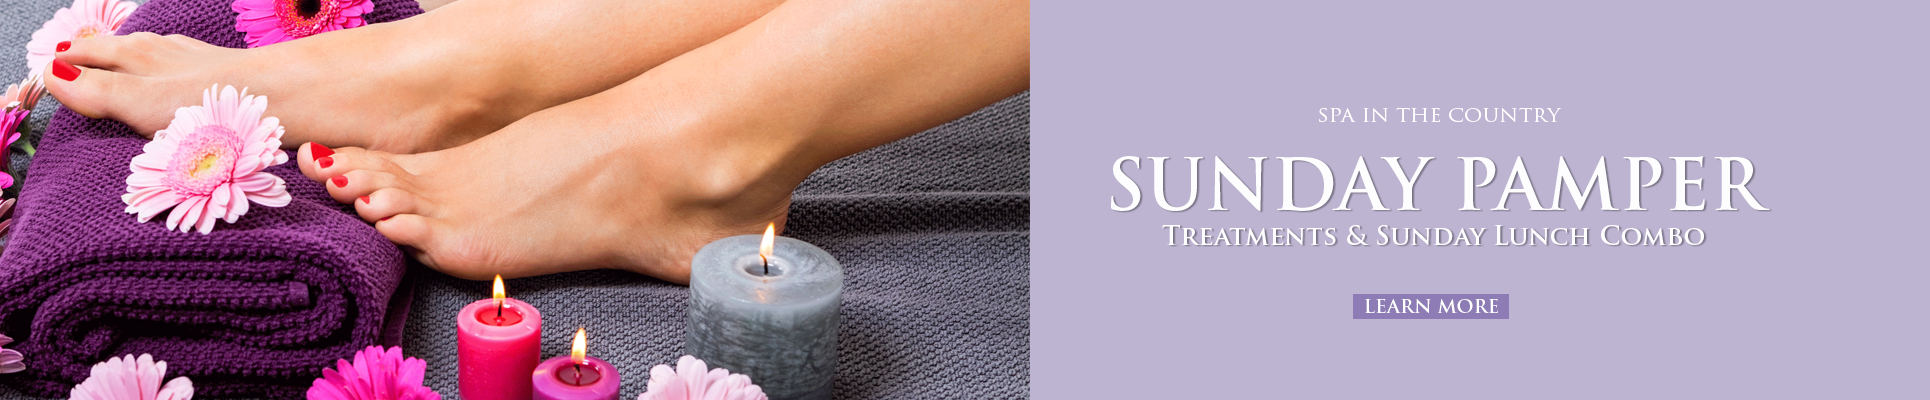 Spa in the Country Sunday Pamper Combo - Muldersdrift spas - Rustenburg spas